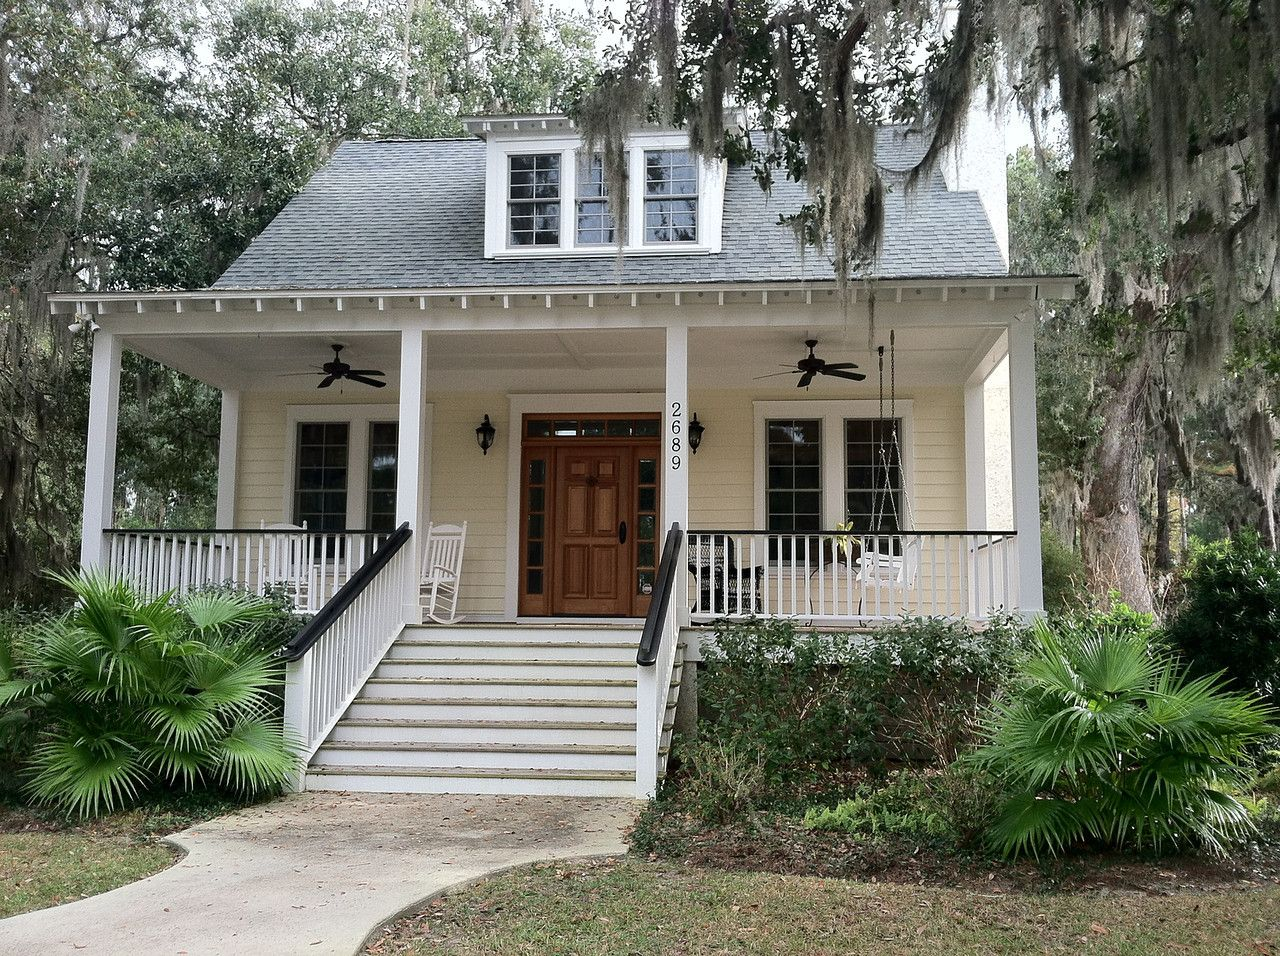 The Sumter Plan by Allison Ramsey Architects built at Overlook at Battery Creek in Beaufort, South Carolina. This plan is 2262 Heated Square Feet, 3 Bedrooms and 2 1/2 Bathrooms.